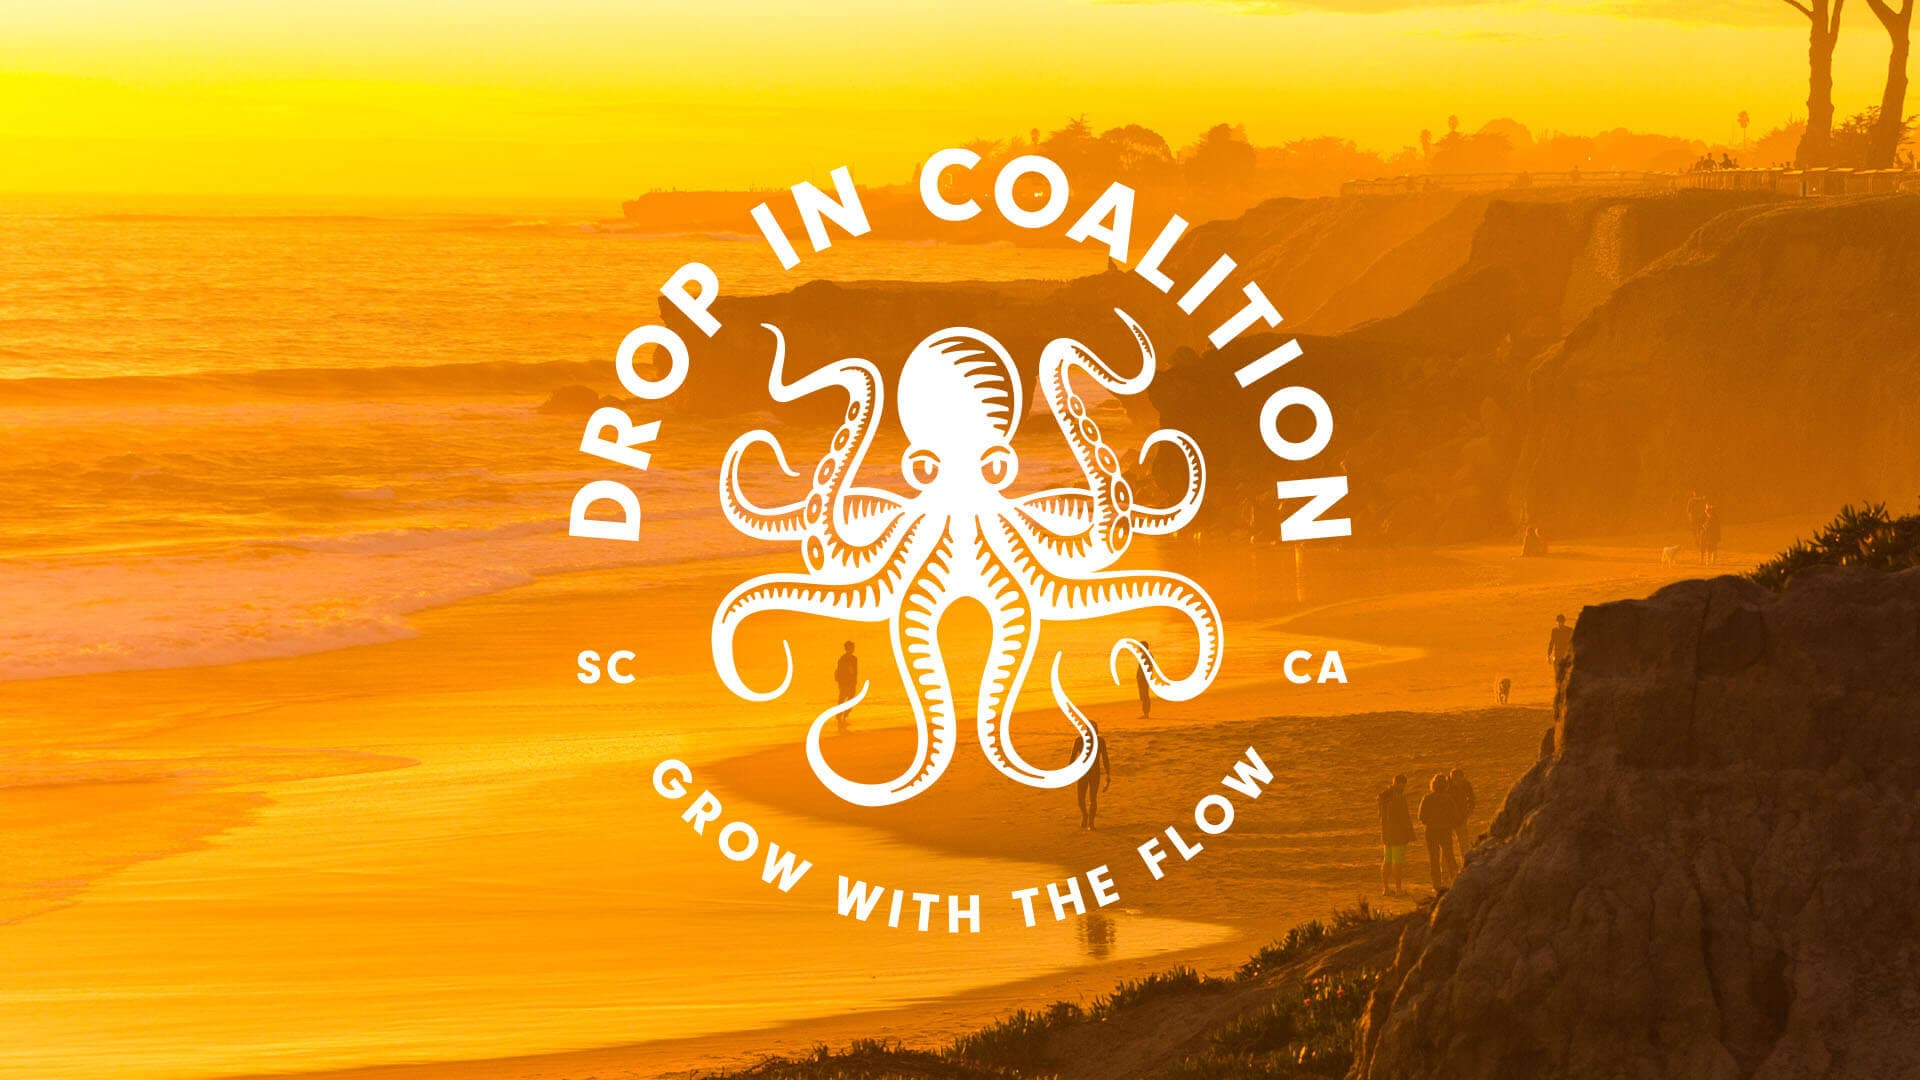 Drop in Coalition Logo on a sunset beach